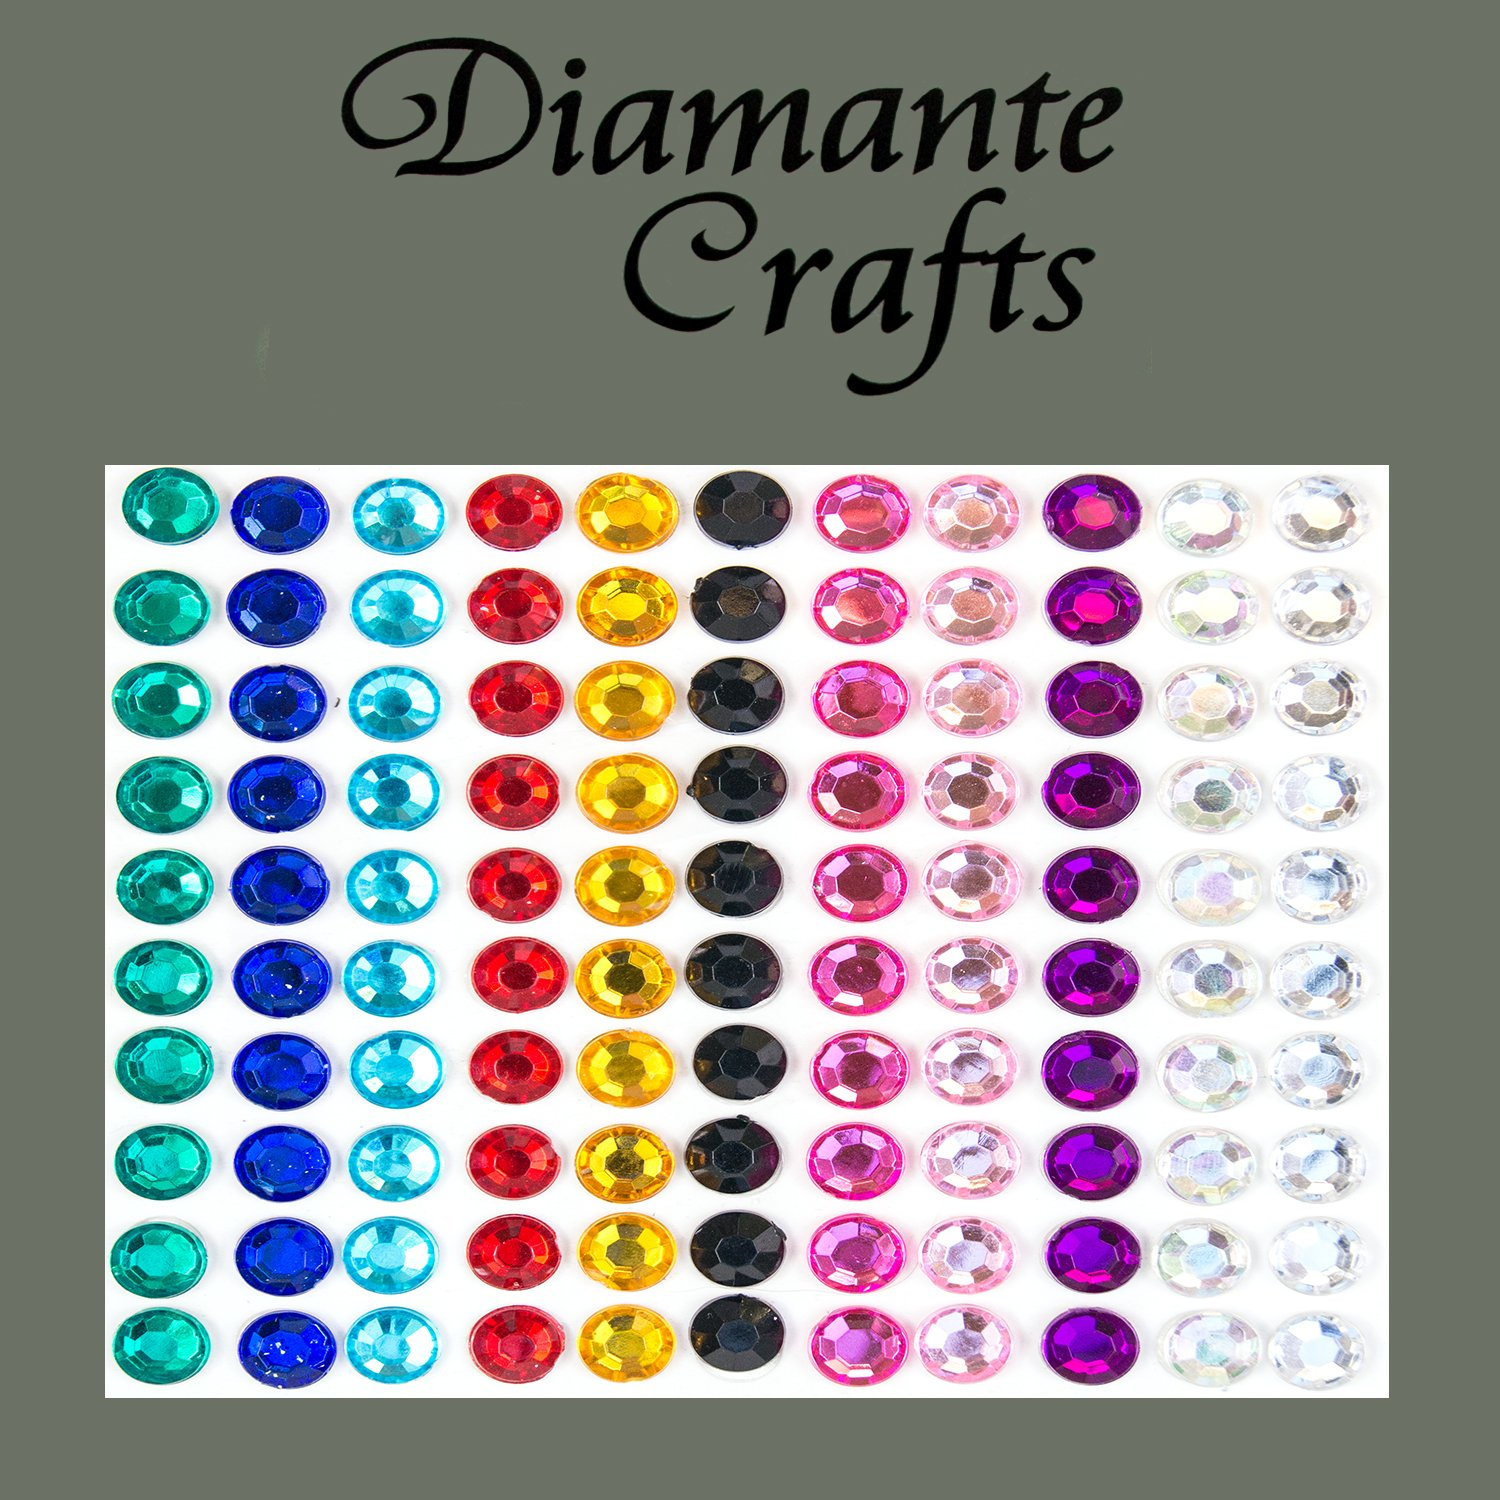 110 x 6mm Mixed Colours Diamante Self Adhesive Rhinestone Body Vajazzle Gems - created exclusively for Diamante Crafts